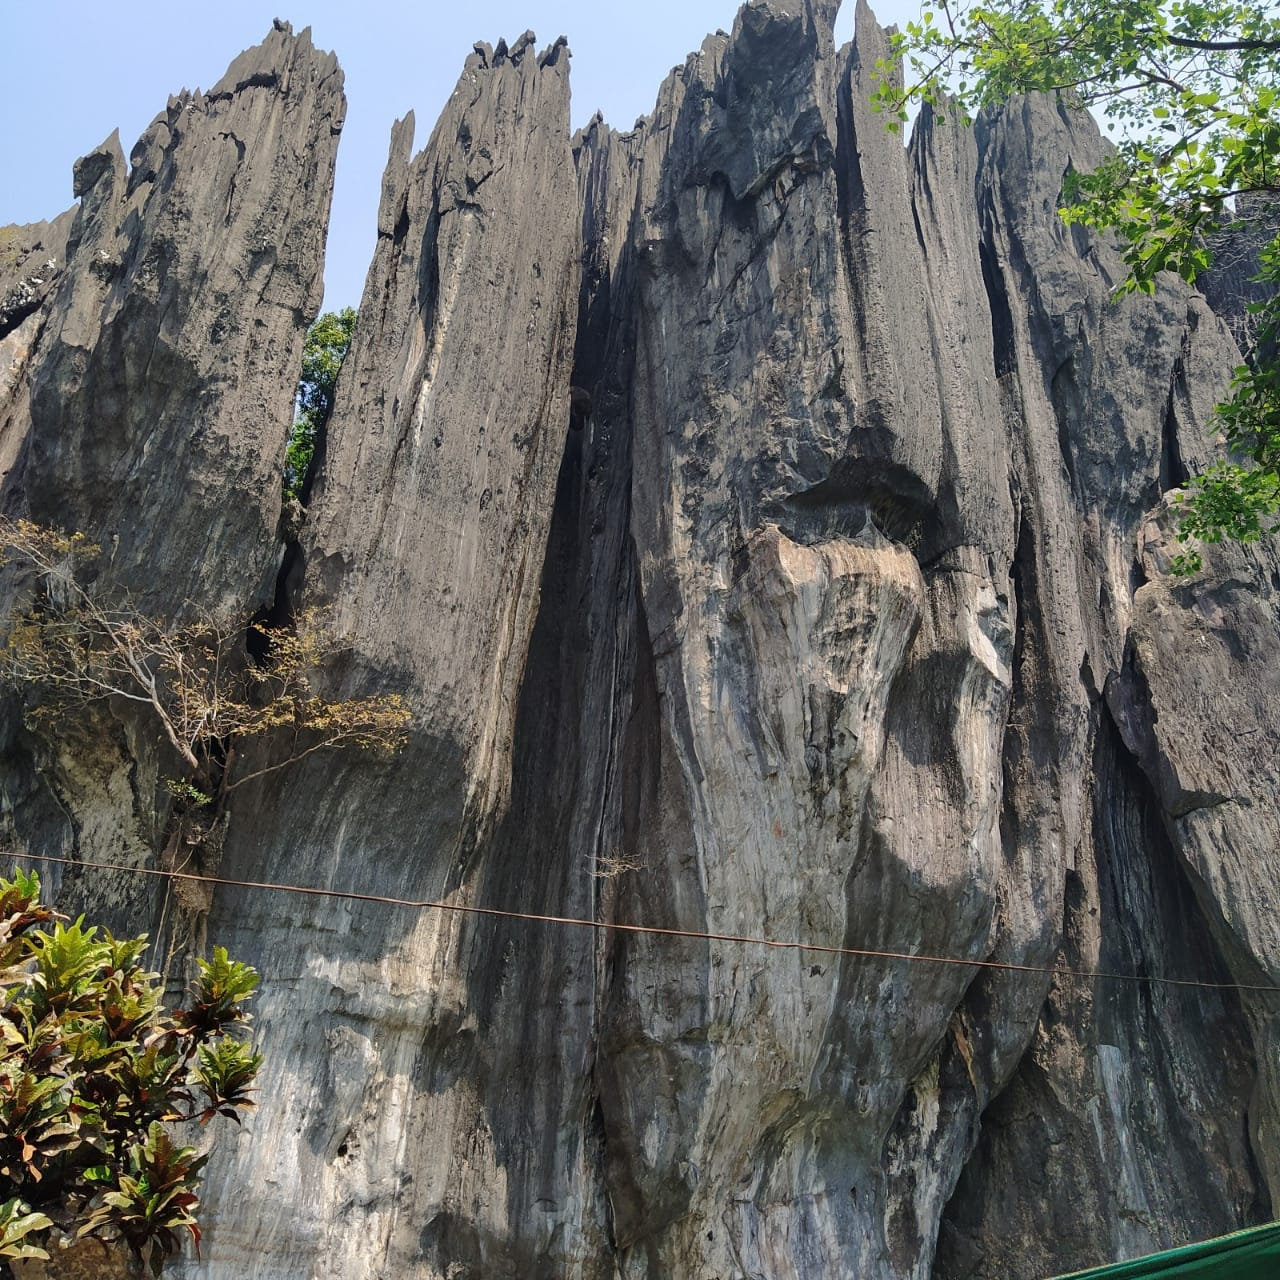 Must visit Yana Caves and Vibhuti Waterfall when you are in Gokarna